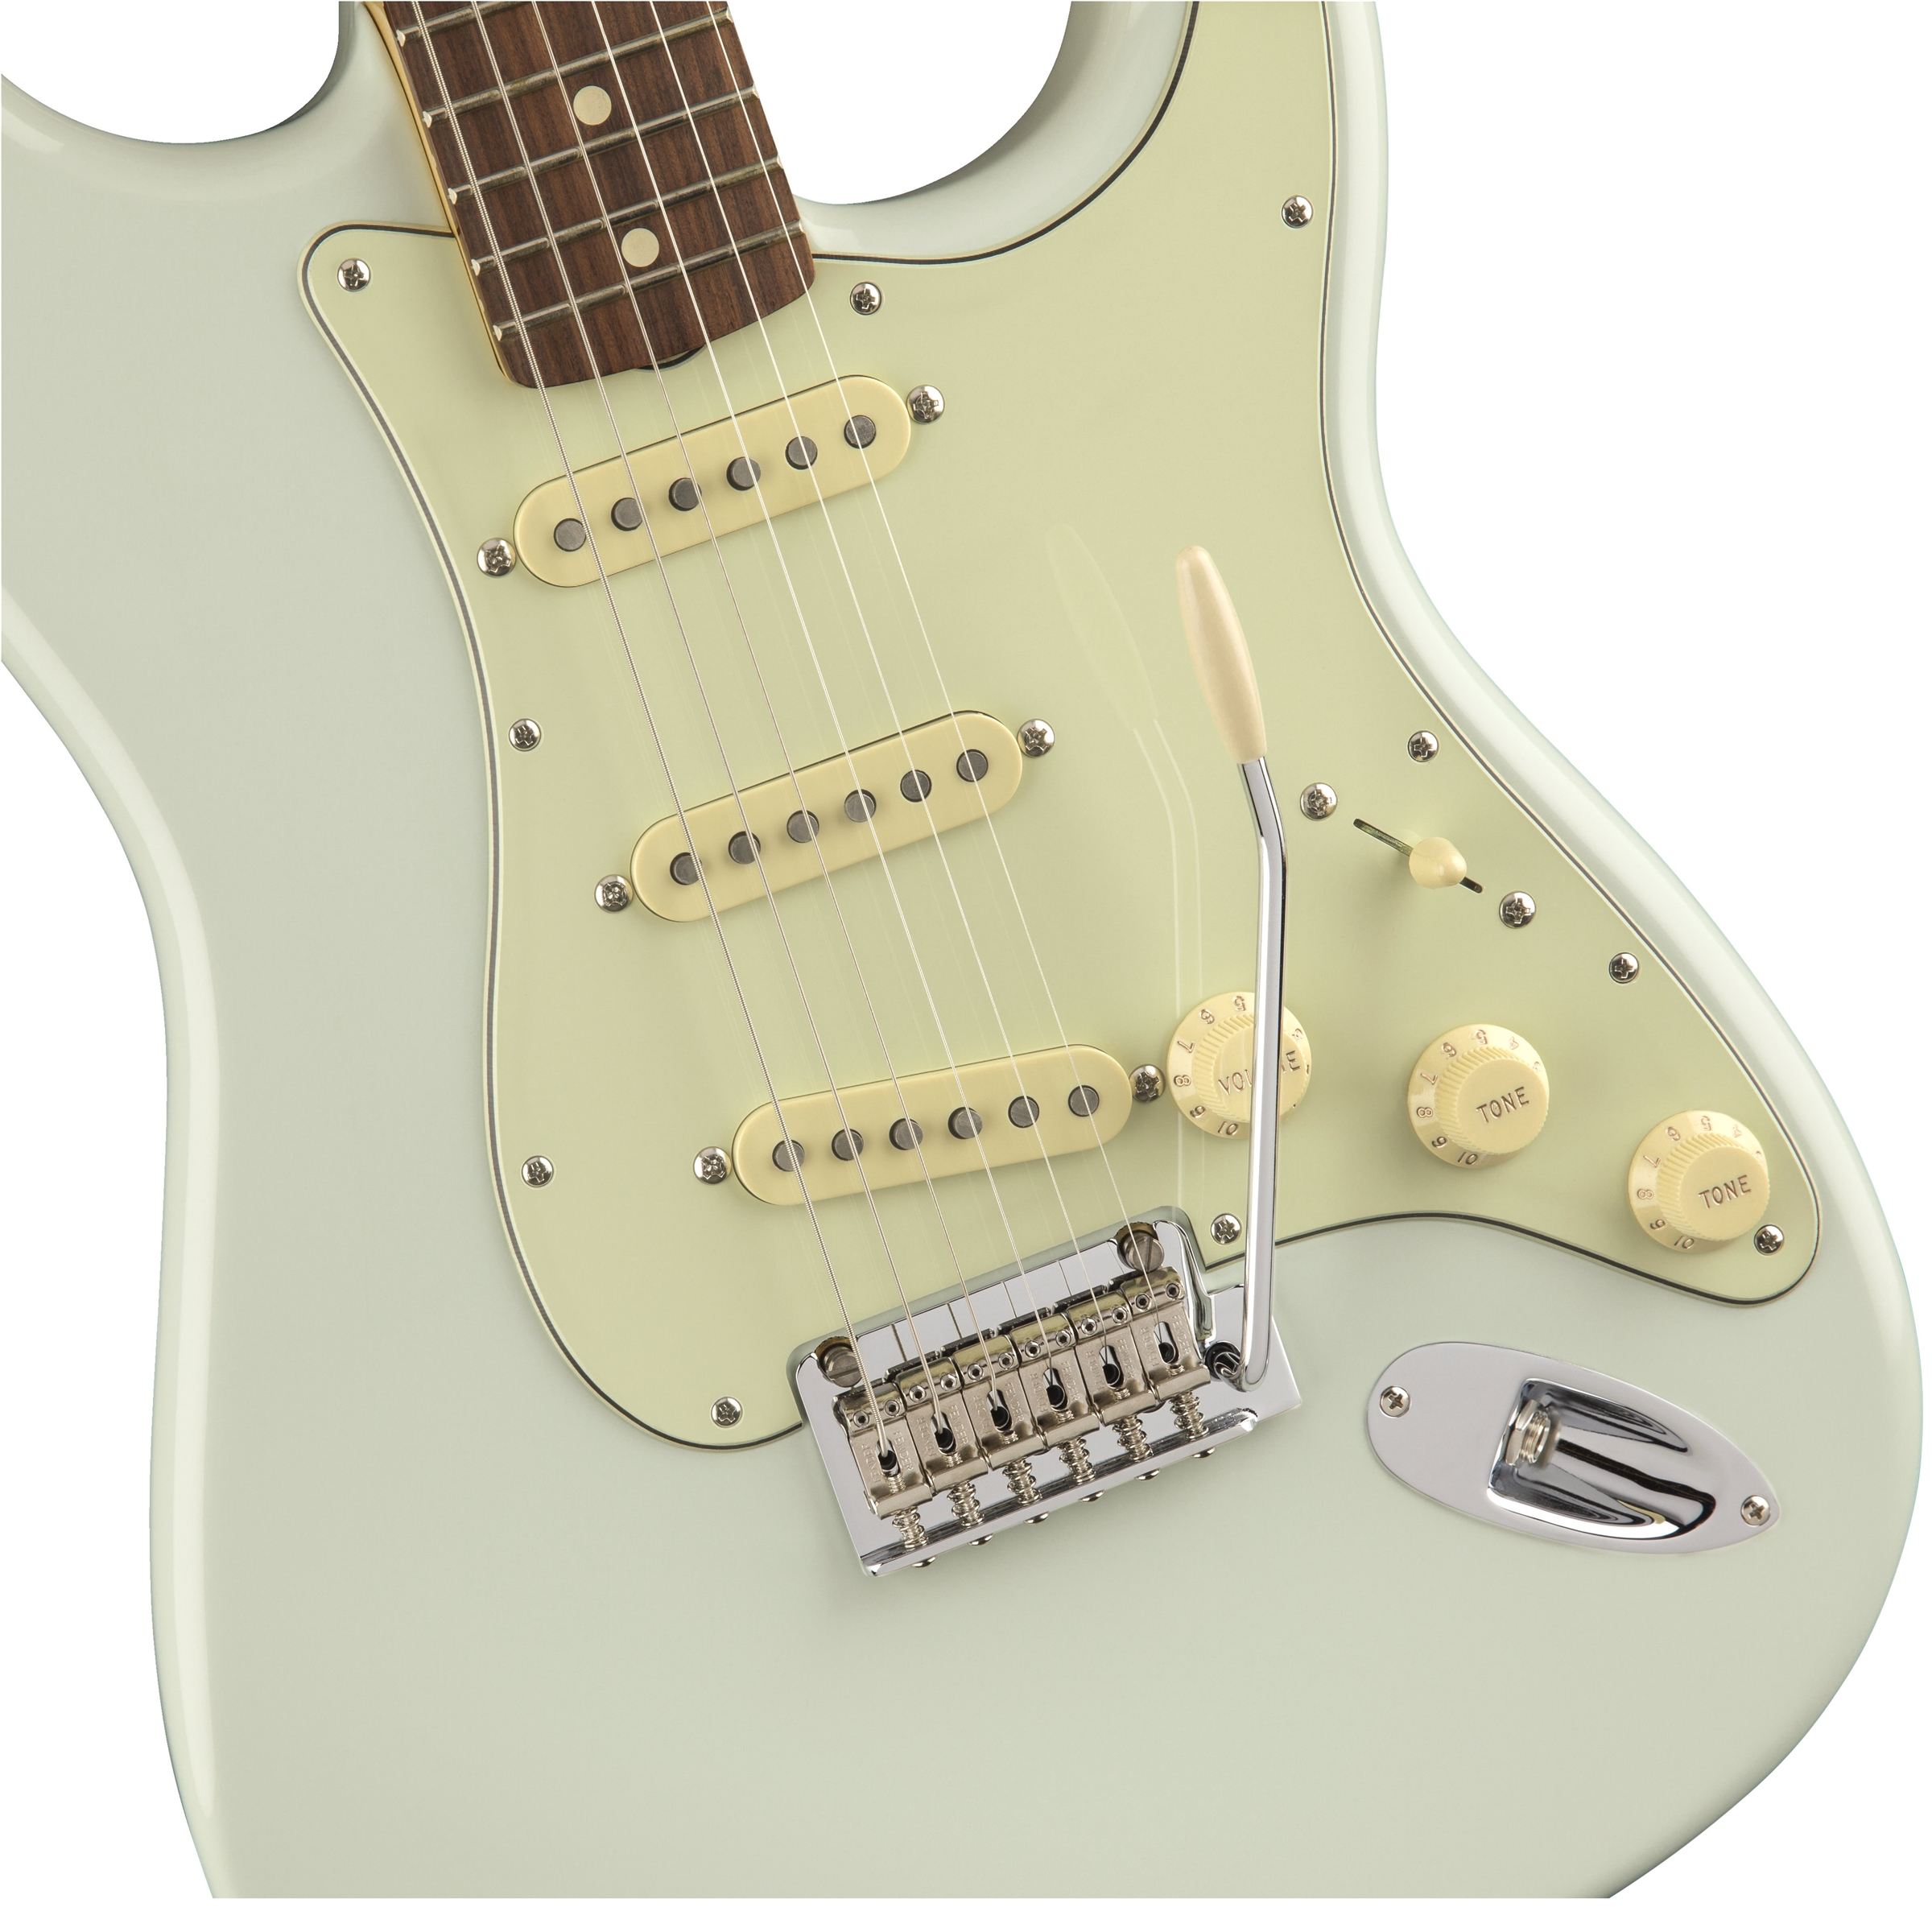 Classic Player 60s Stratocaster Electric Guitars Guitar String Diagram Notes Layout Of The Strings On